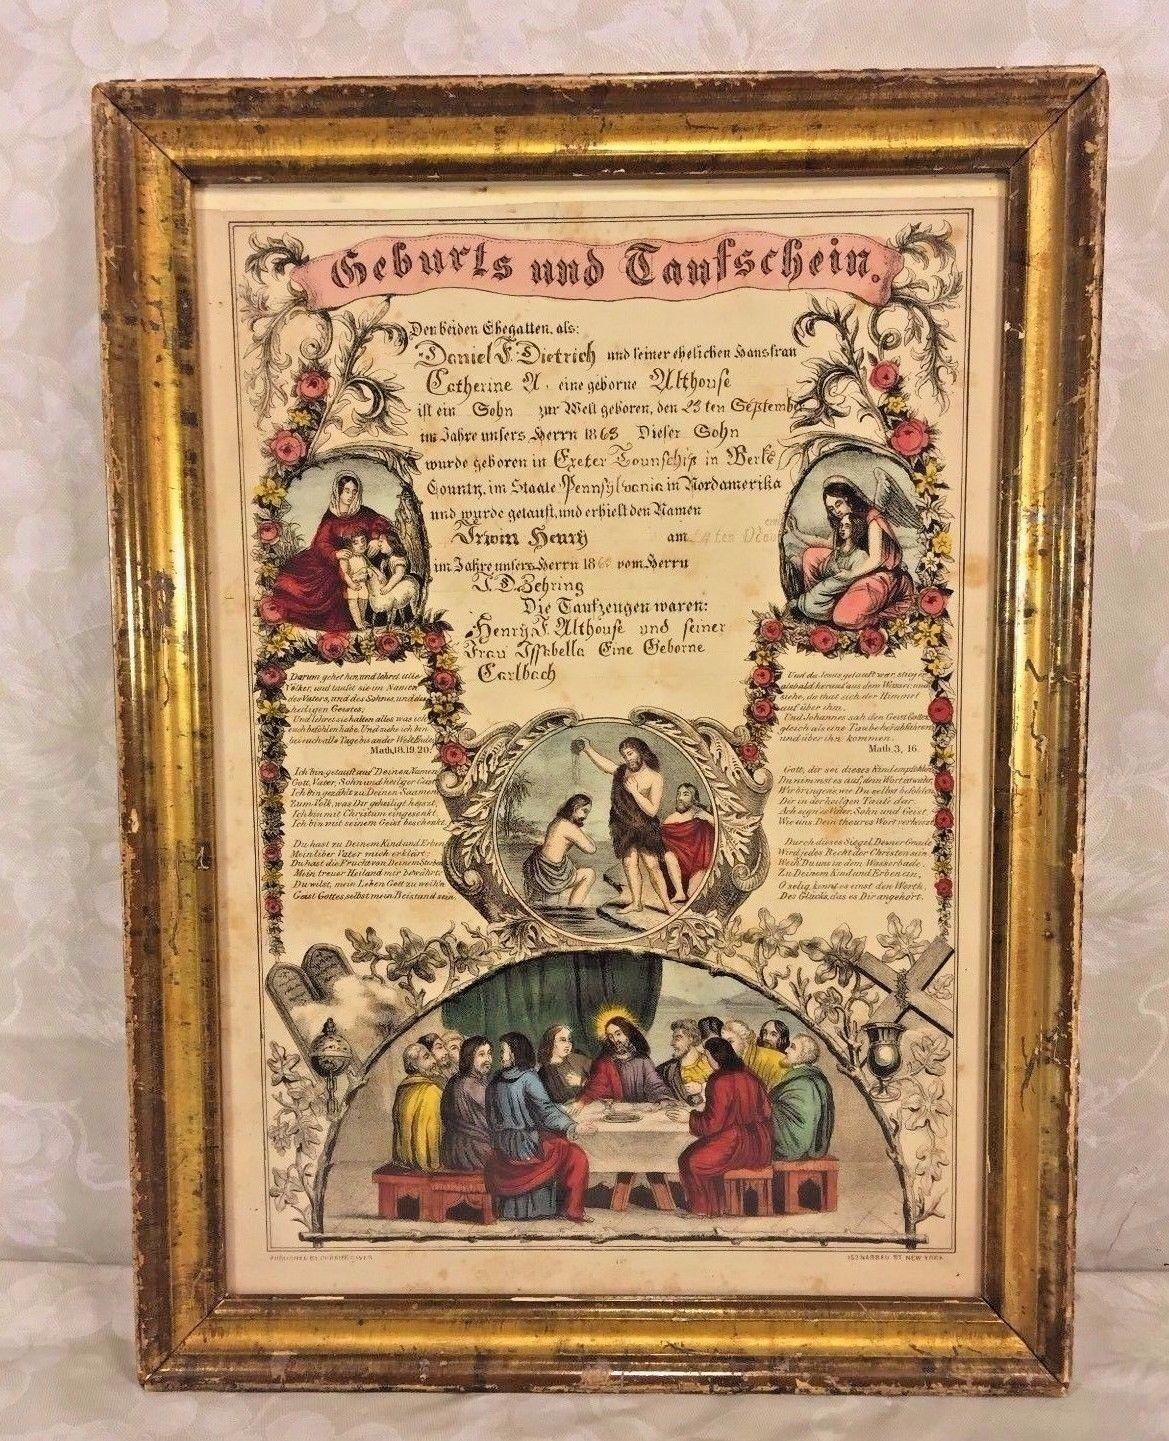 Antique printed birth baptism certificate john dietrich 1863 roll over large image to magnify click large image to zoom xflitez Gallery